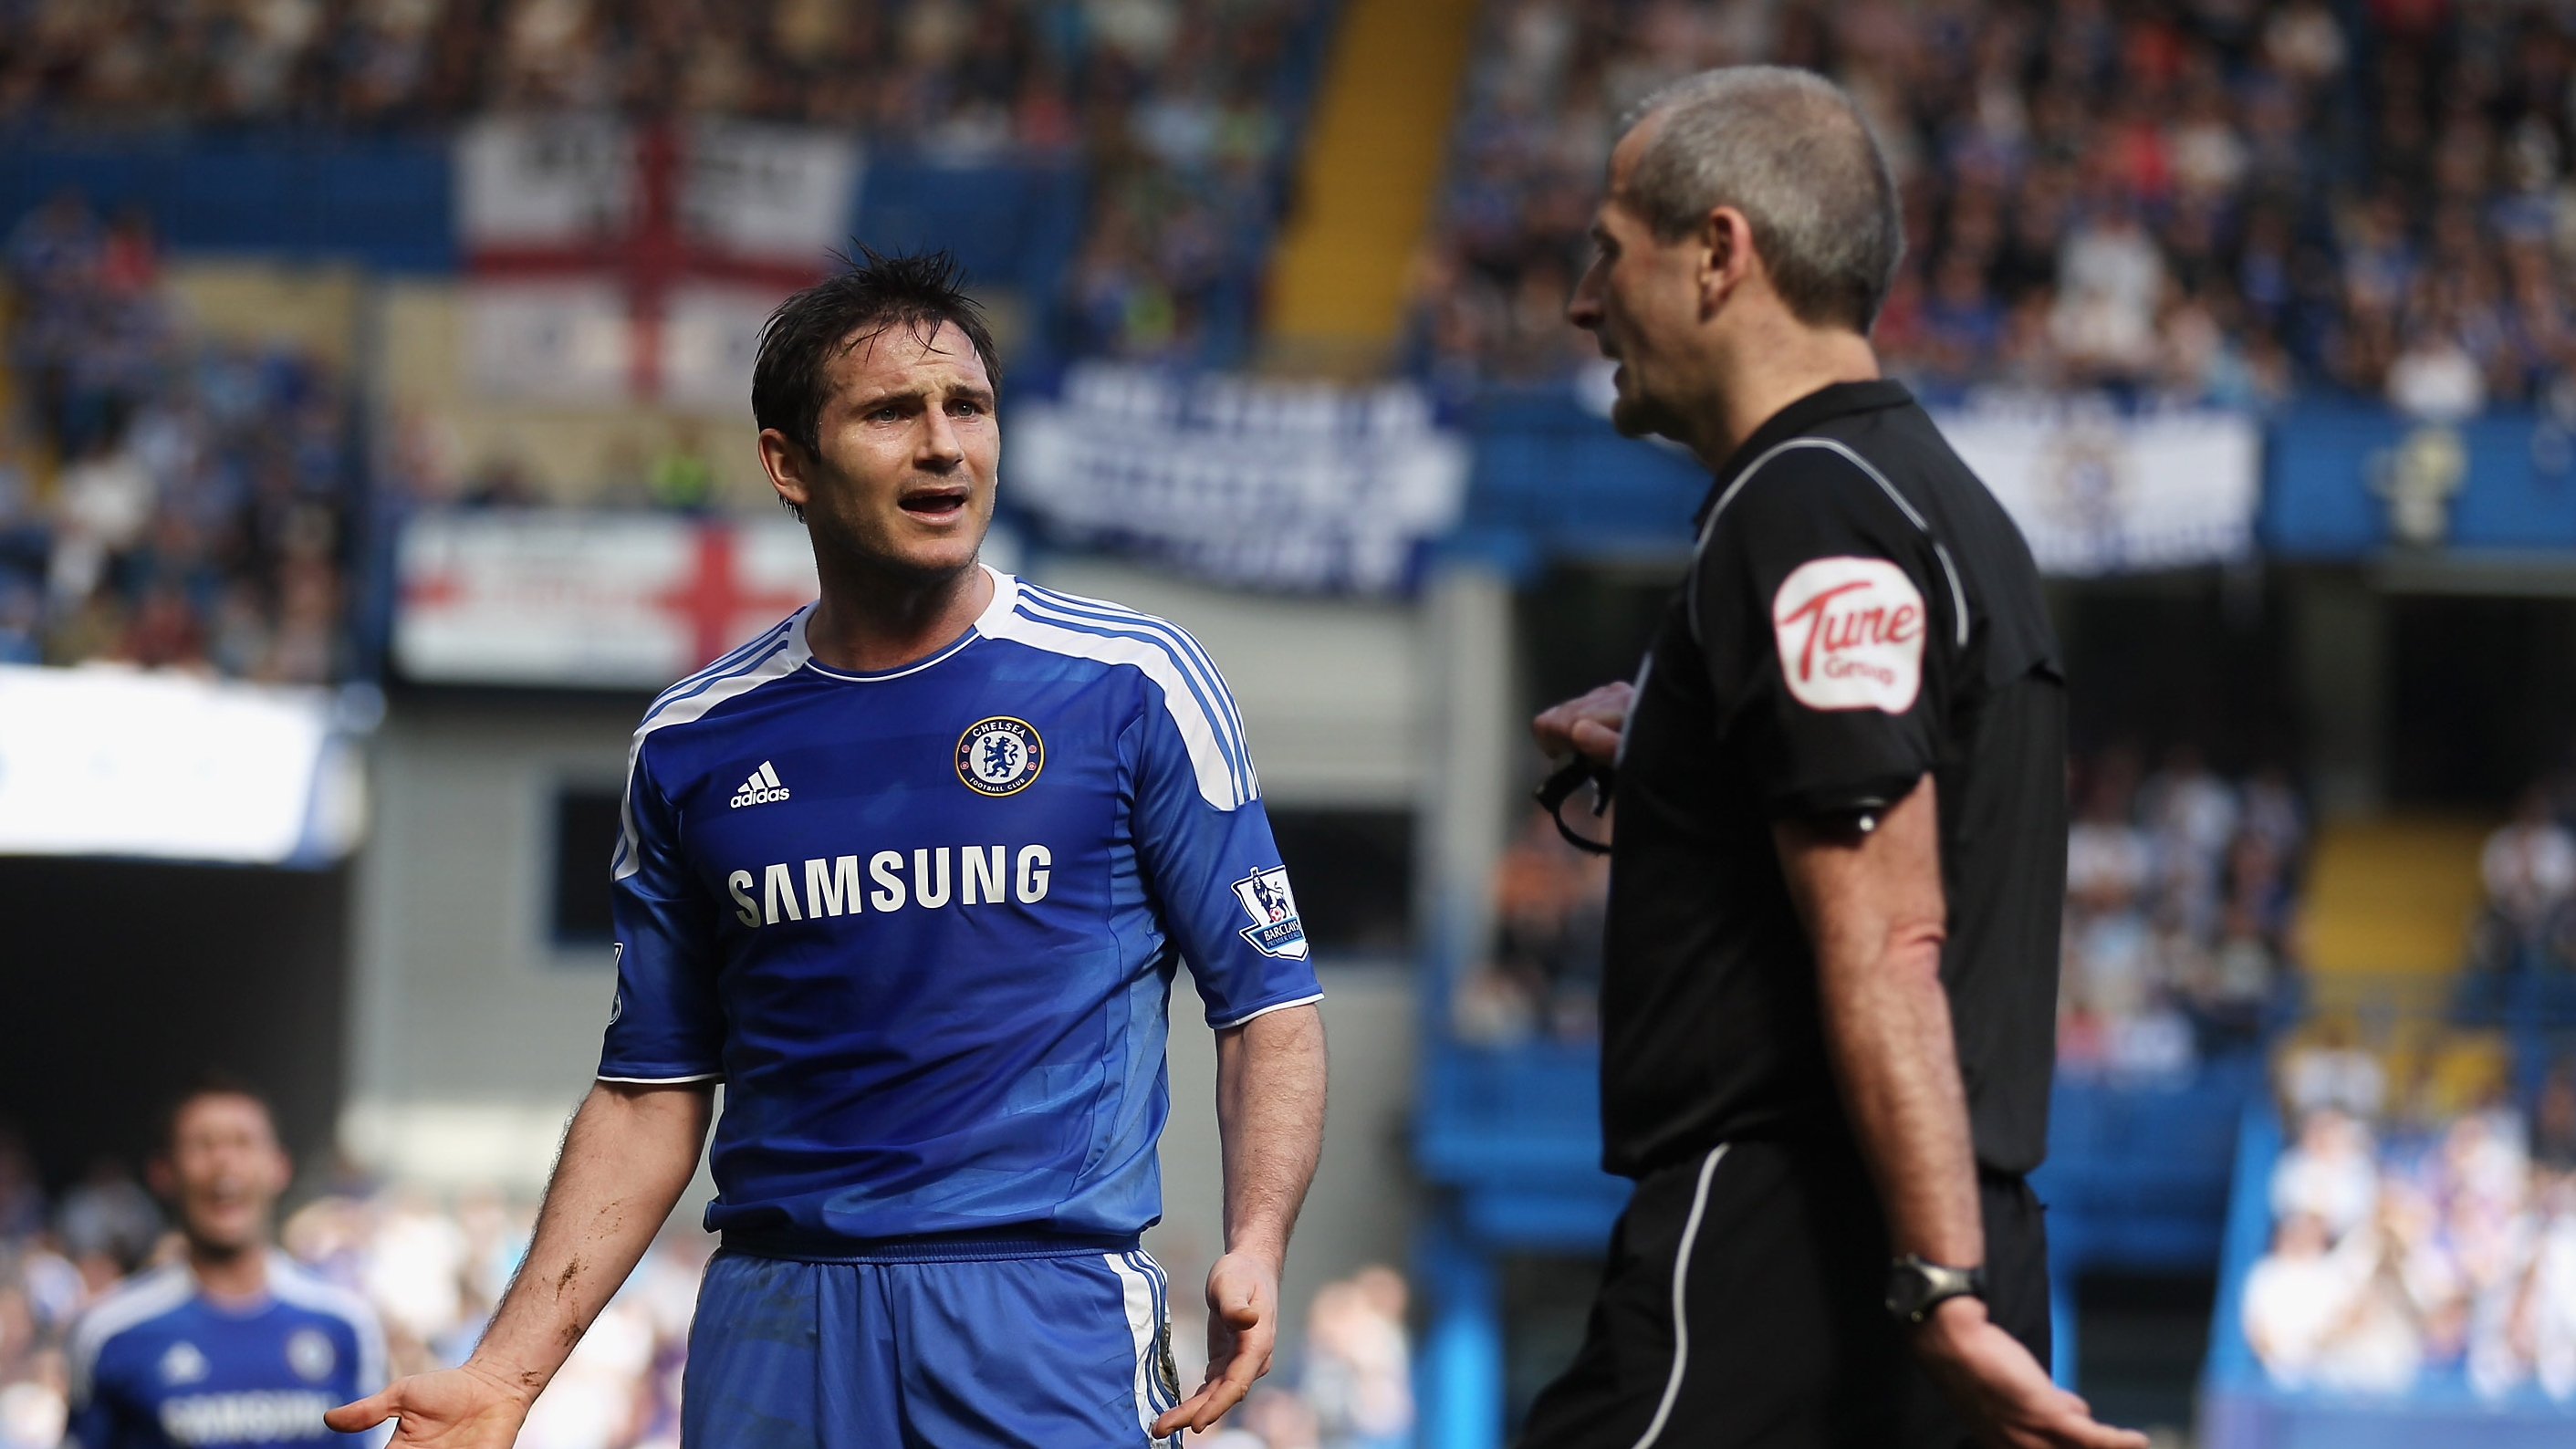 Lampard wants footballers to respect referees like rugby stars do